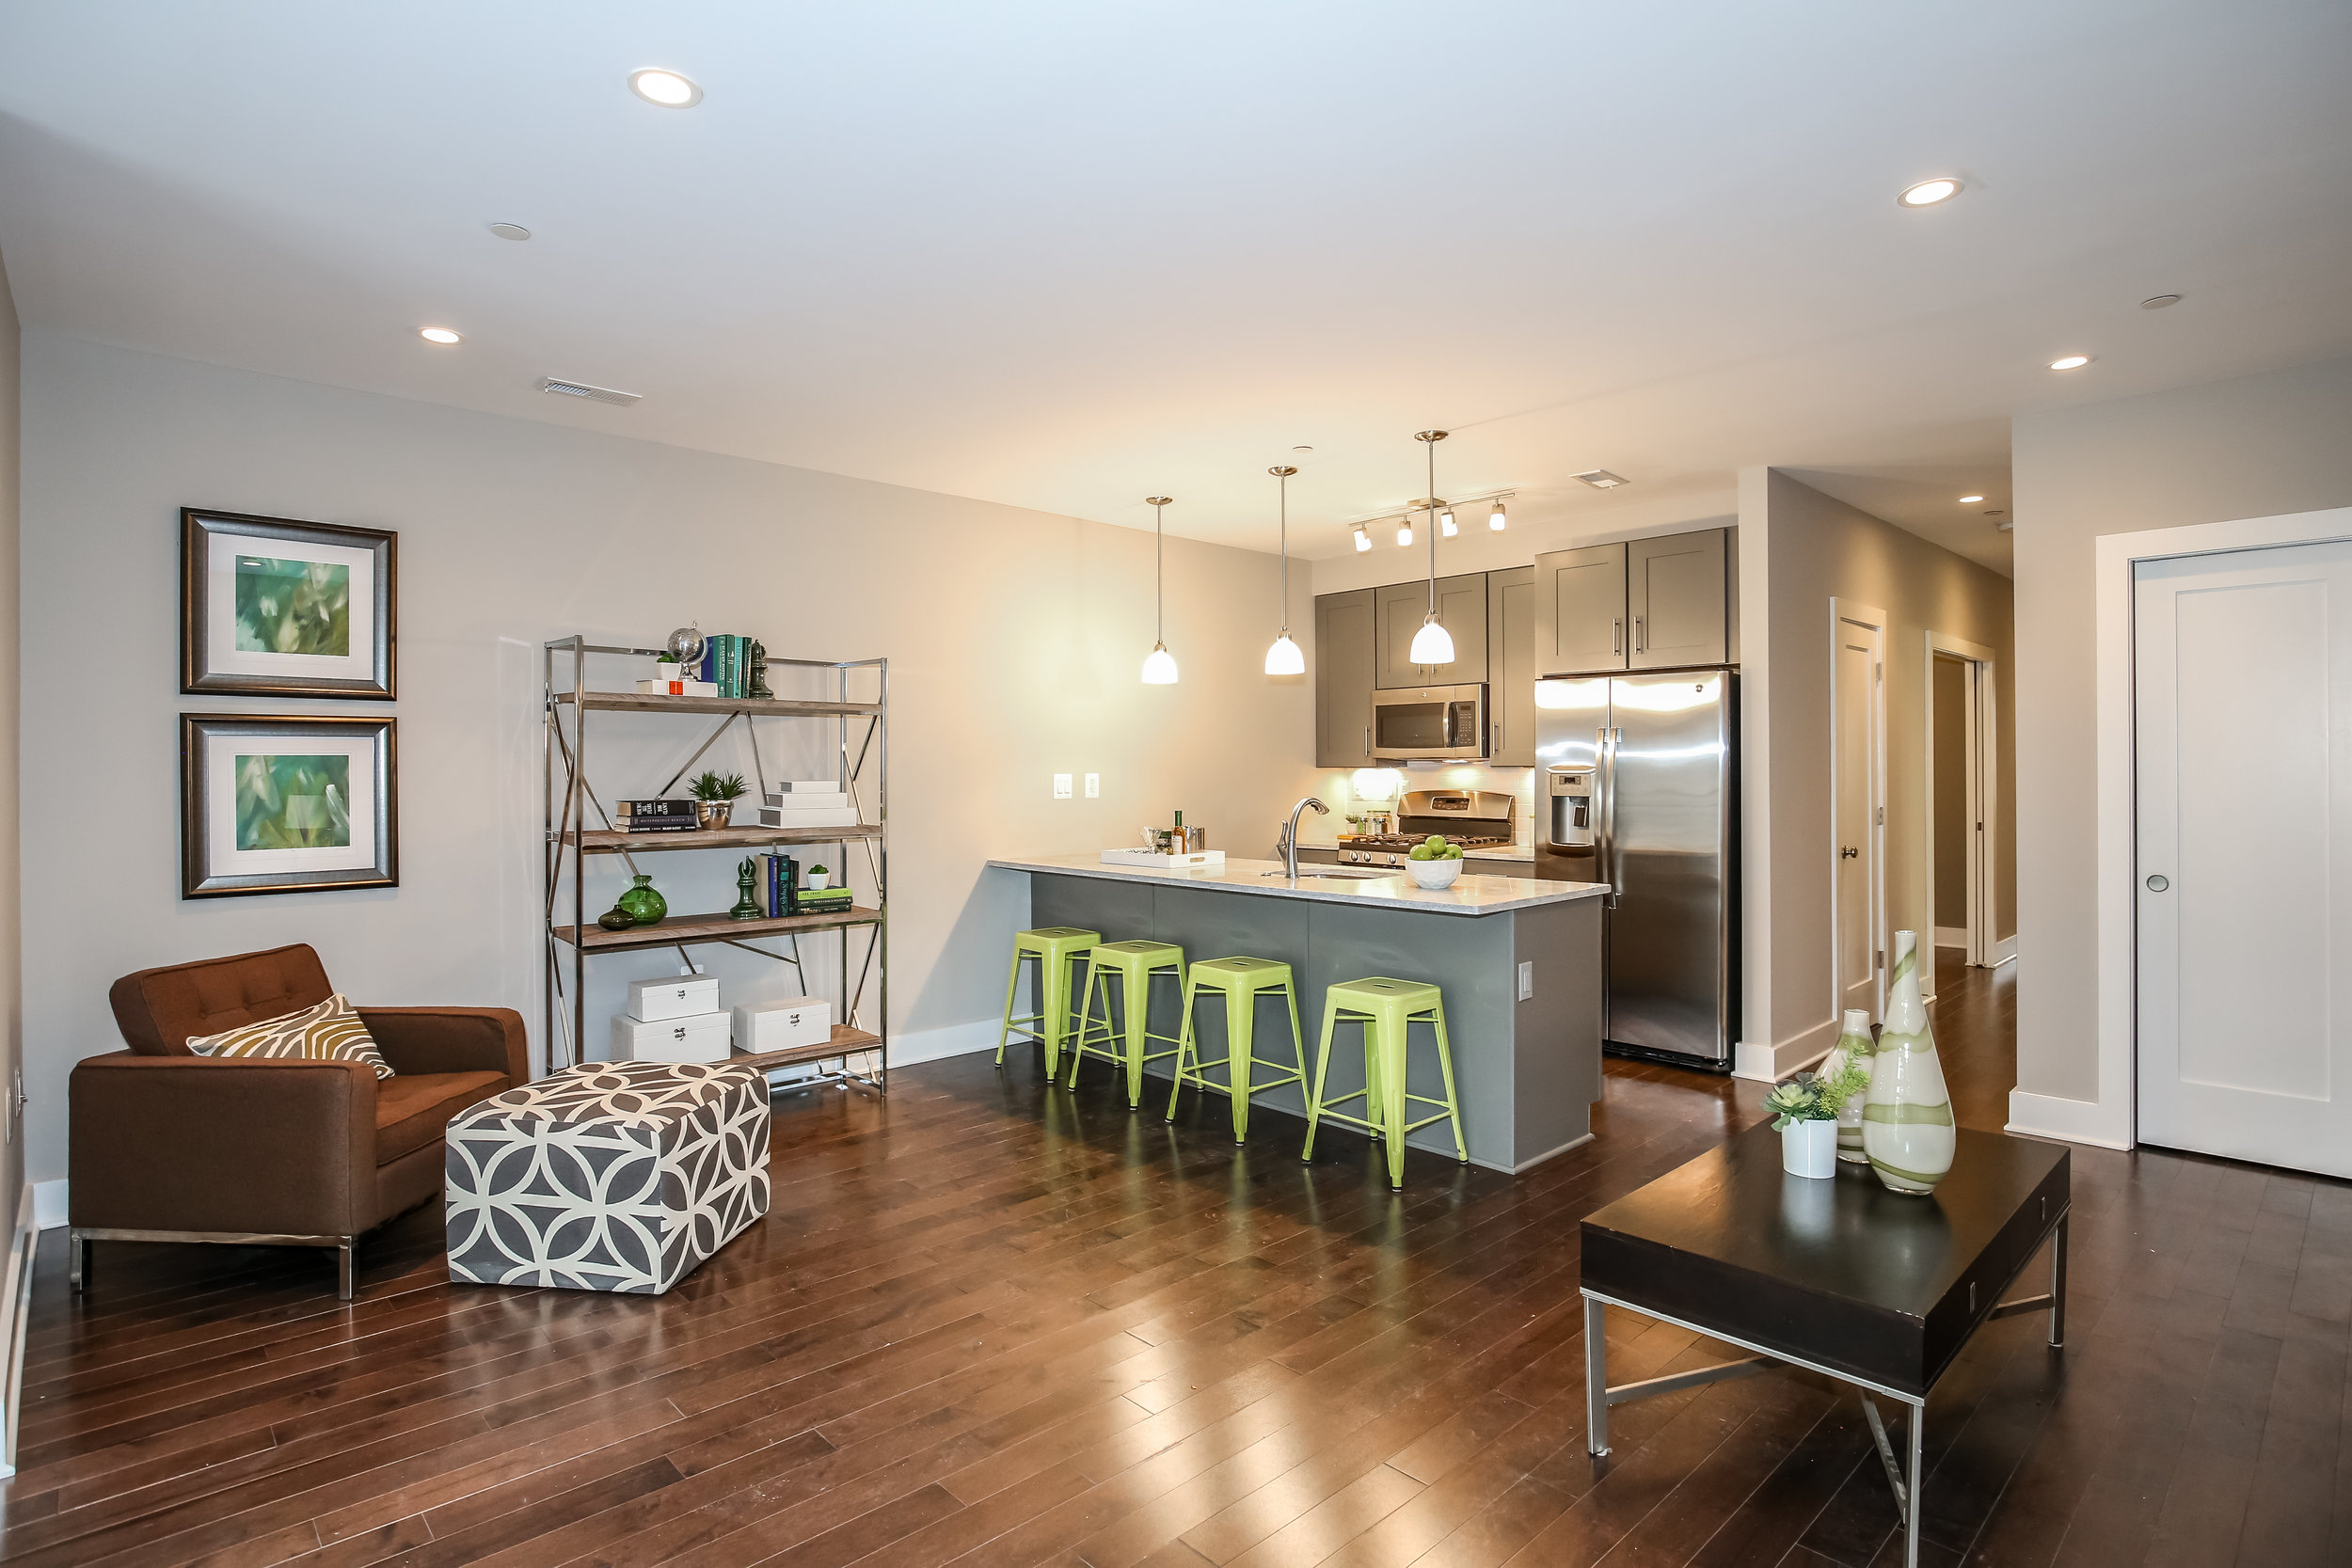 LIONSHEAD: 3821 14th St NW - 9 3BR/2BA CONDOS IN COLUMBIA HEIGHTS